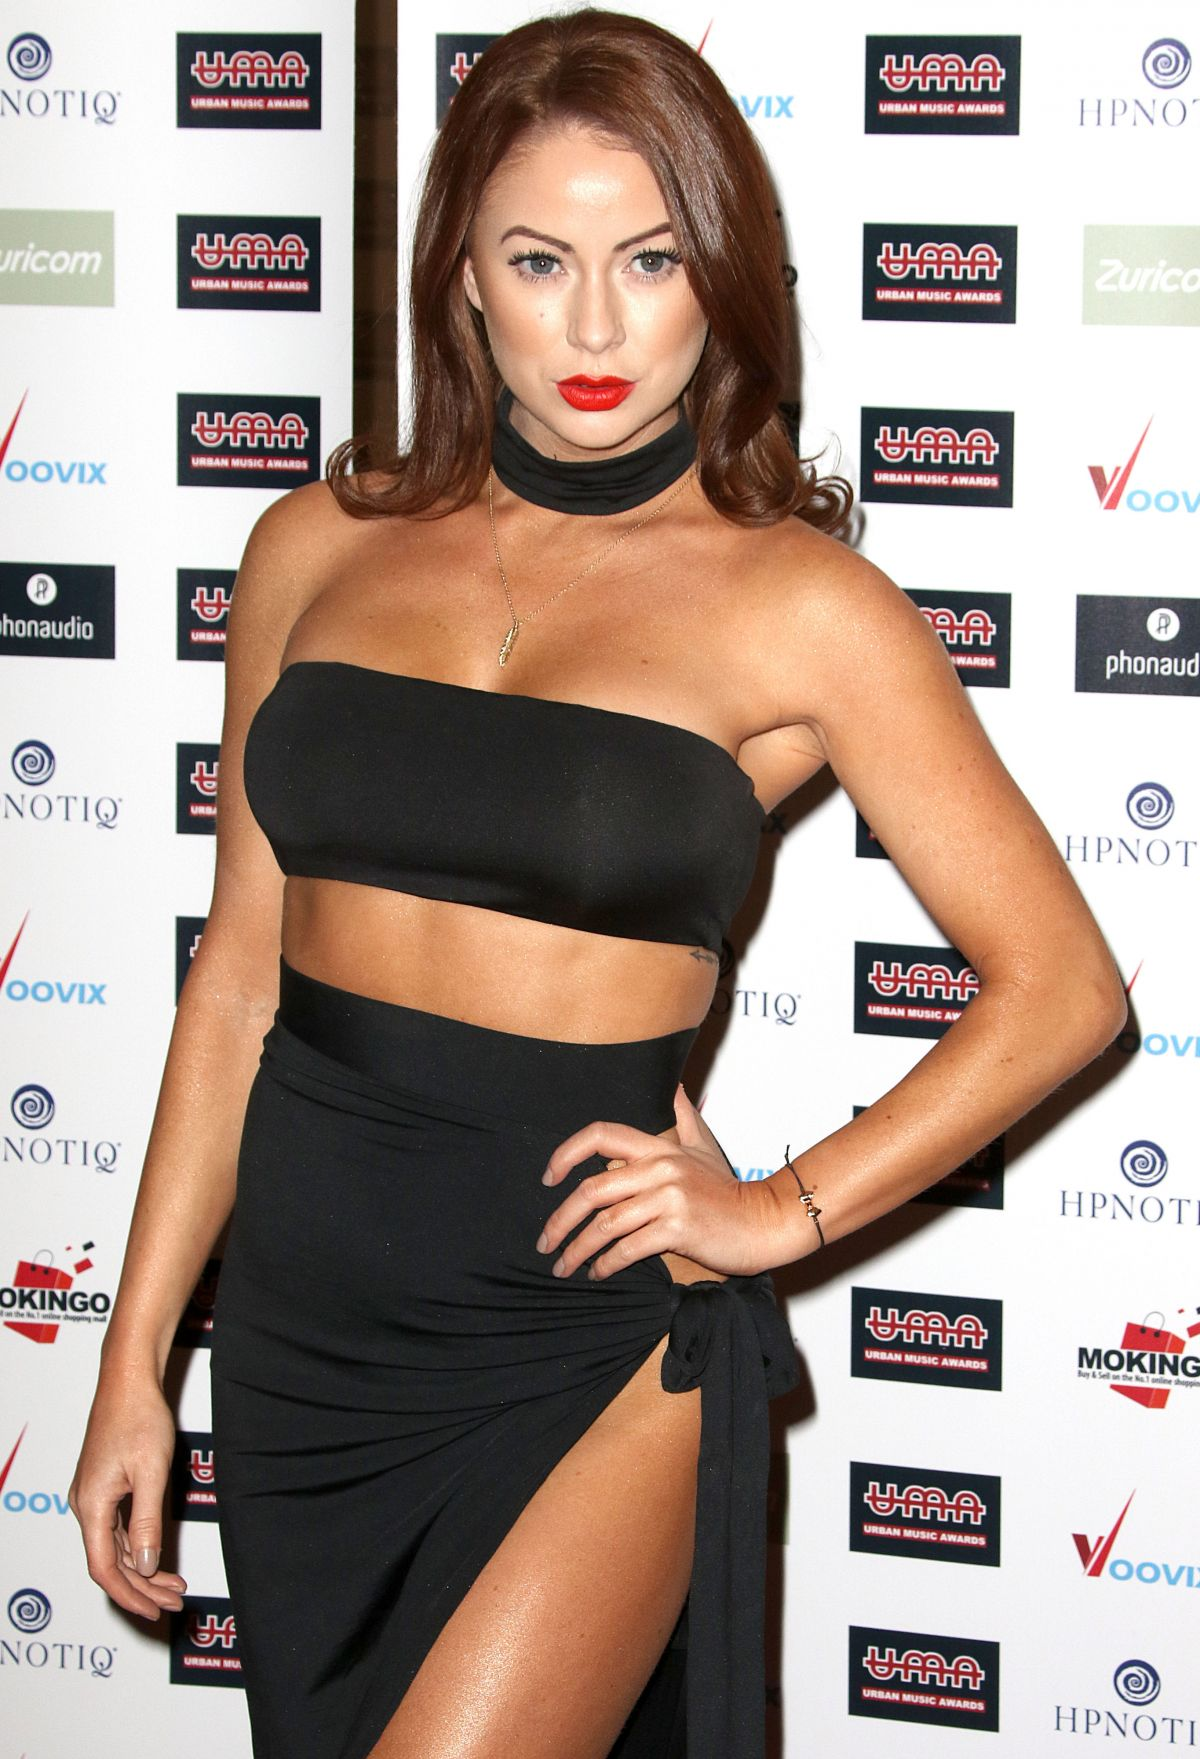 LAURA CARTER at Urban Music Awards 2016 in London 11/26/2016